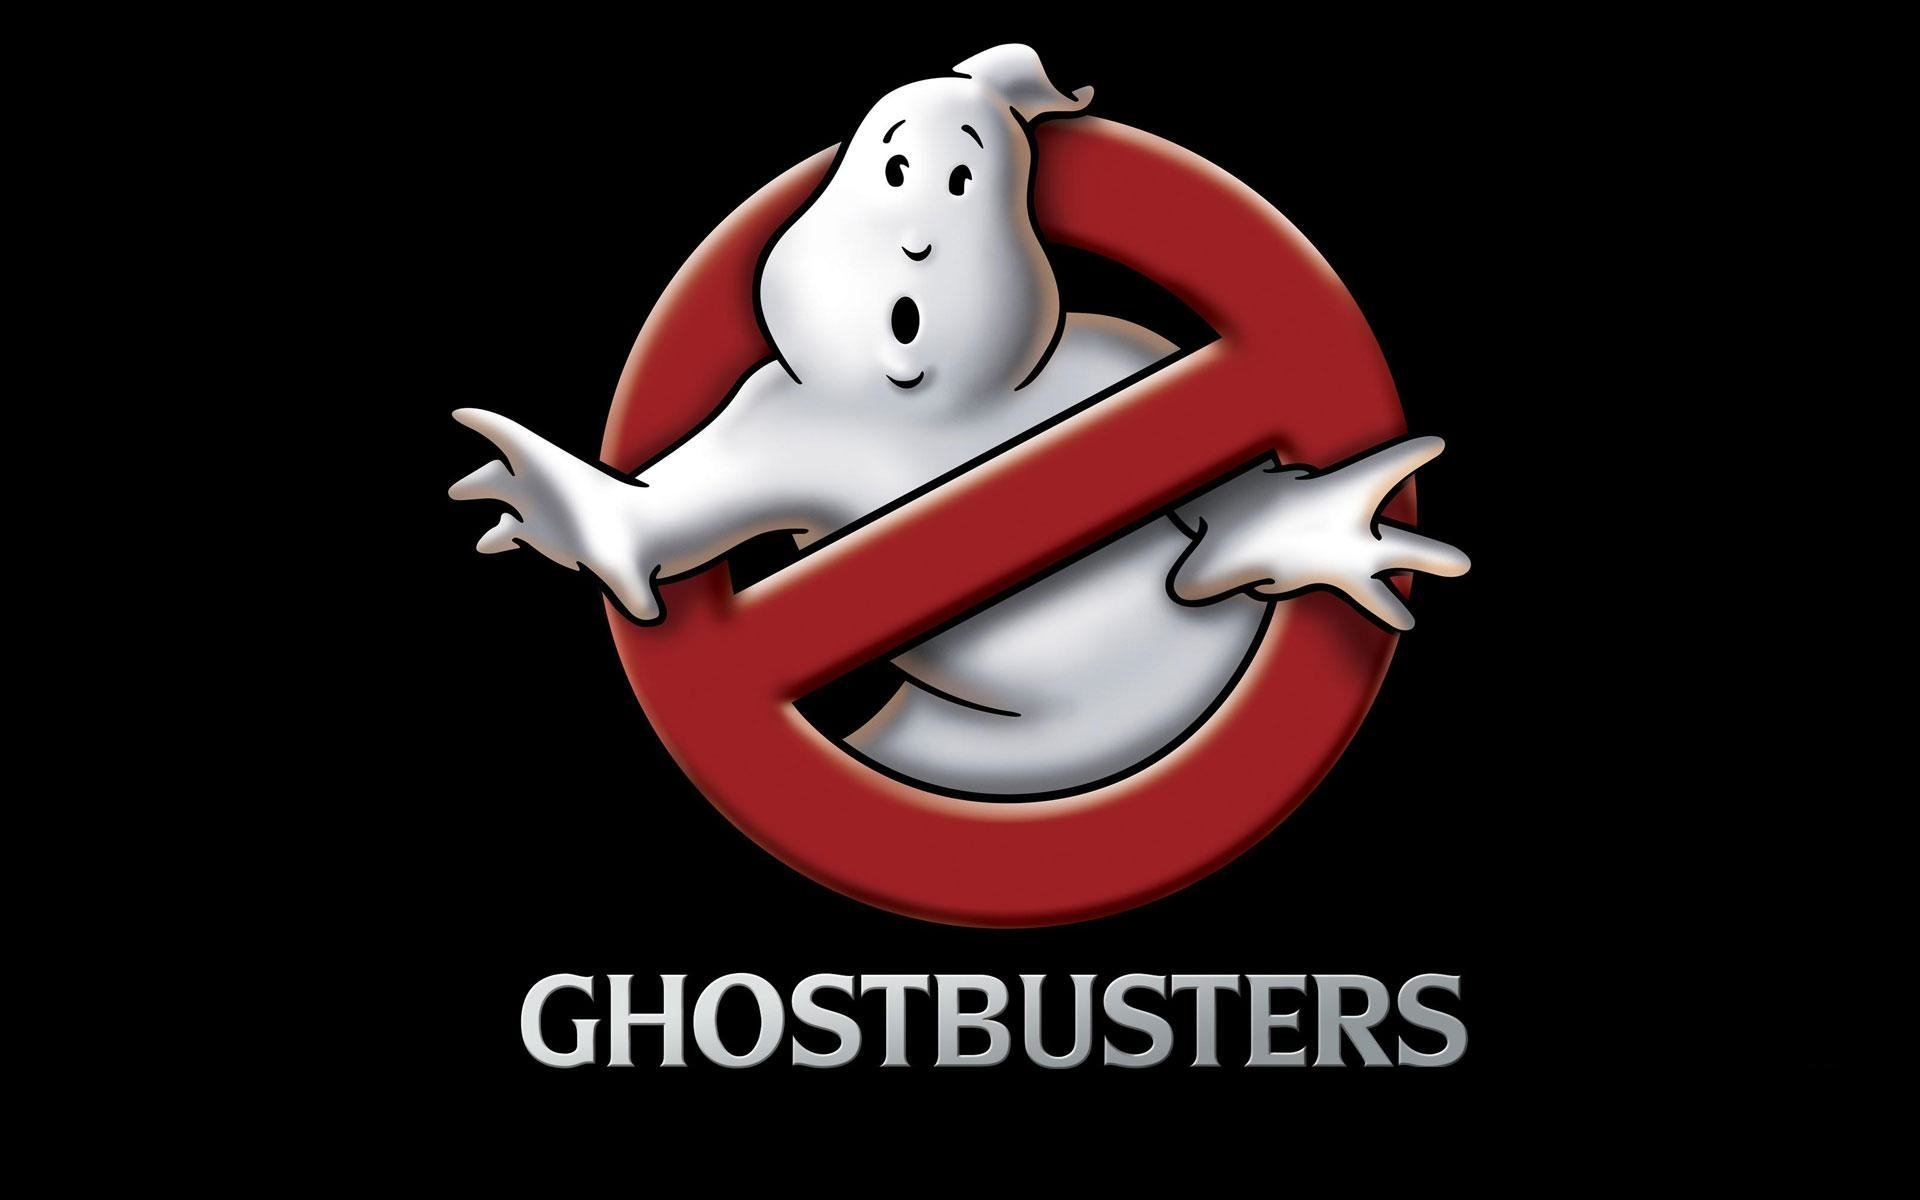 40 Ghostbusters HD Wallpapers   Backgrounds - Wallpaper Abyss